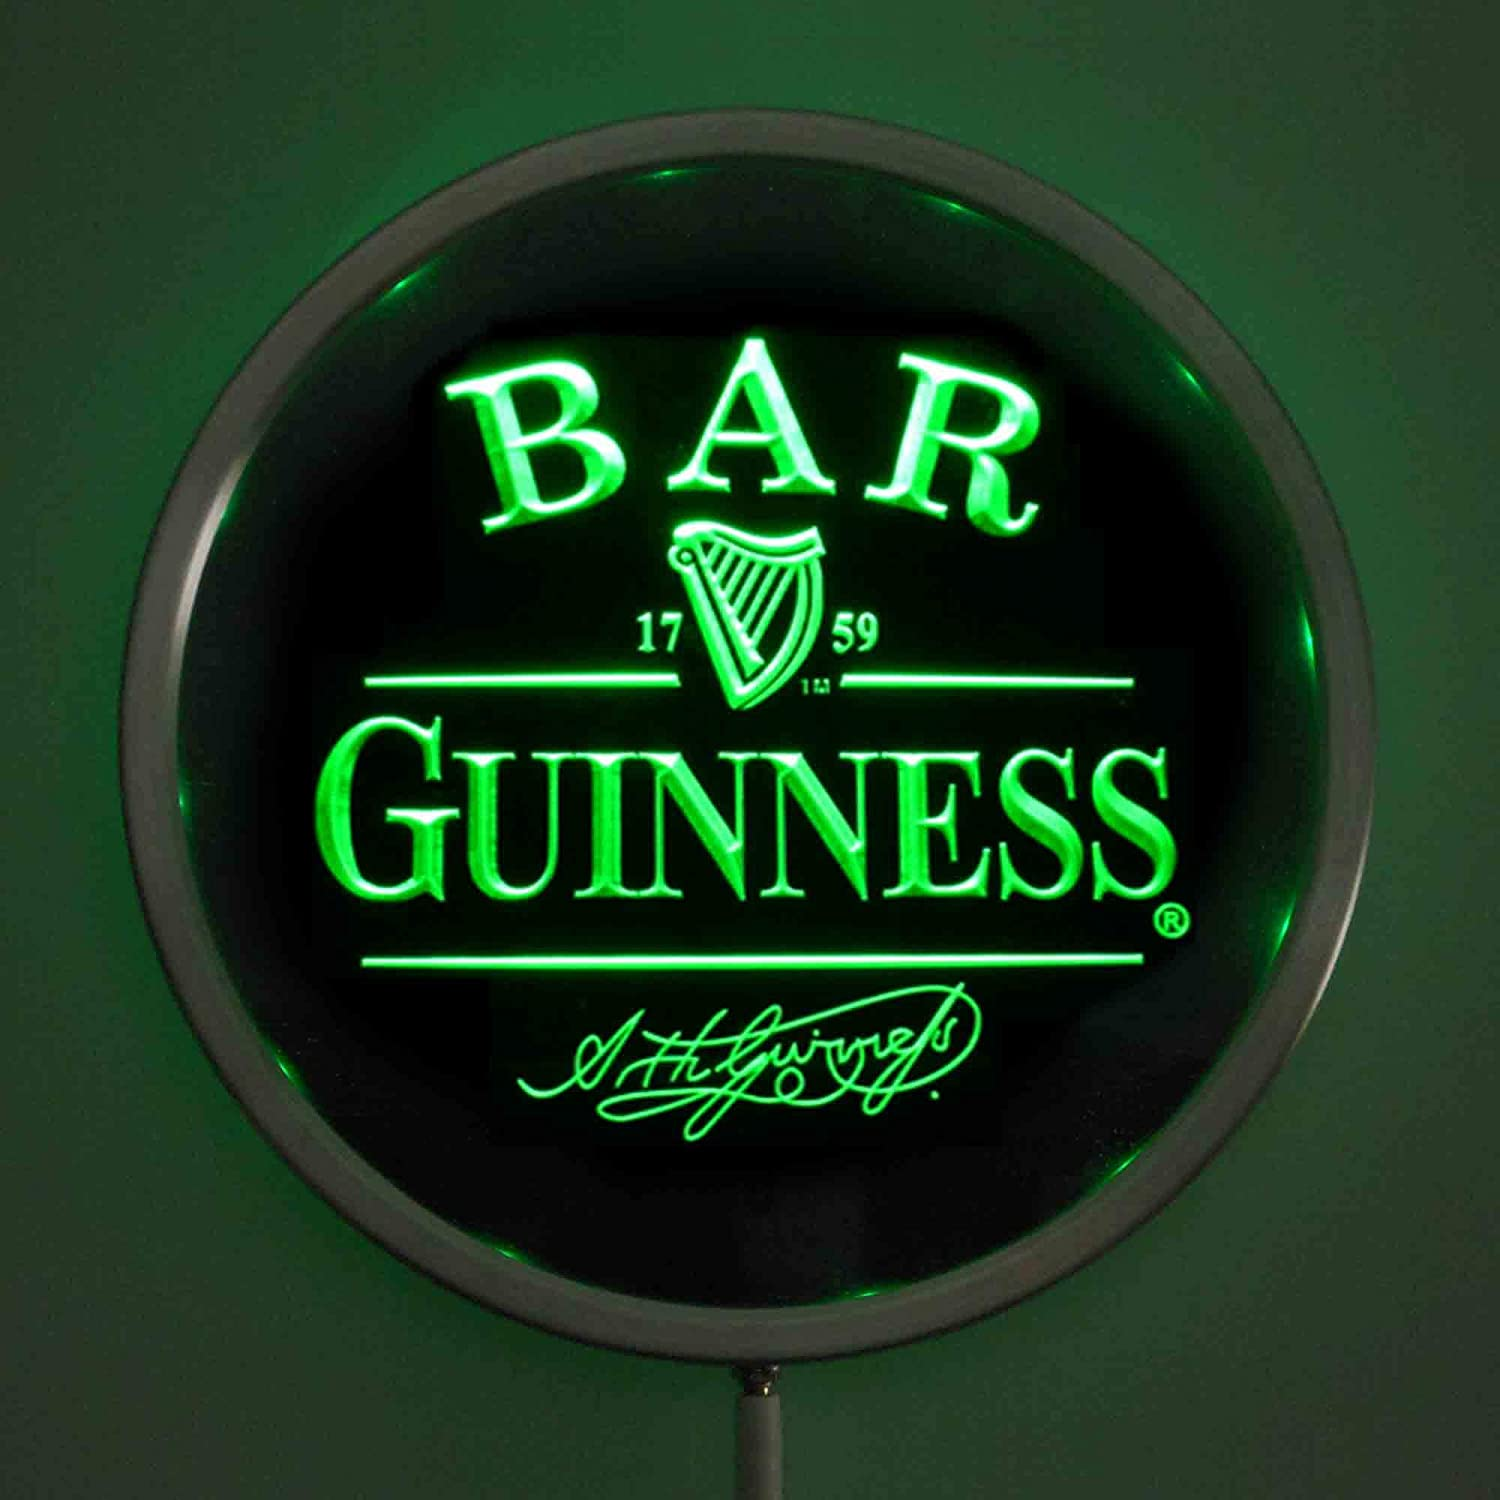 ZFRANC Guinness Signature Bar 10 Inches Man Round Free Shipping Cheap Bargain Gift Neon Sign We OFFer at cheap prices LED